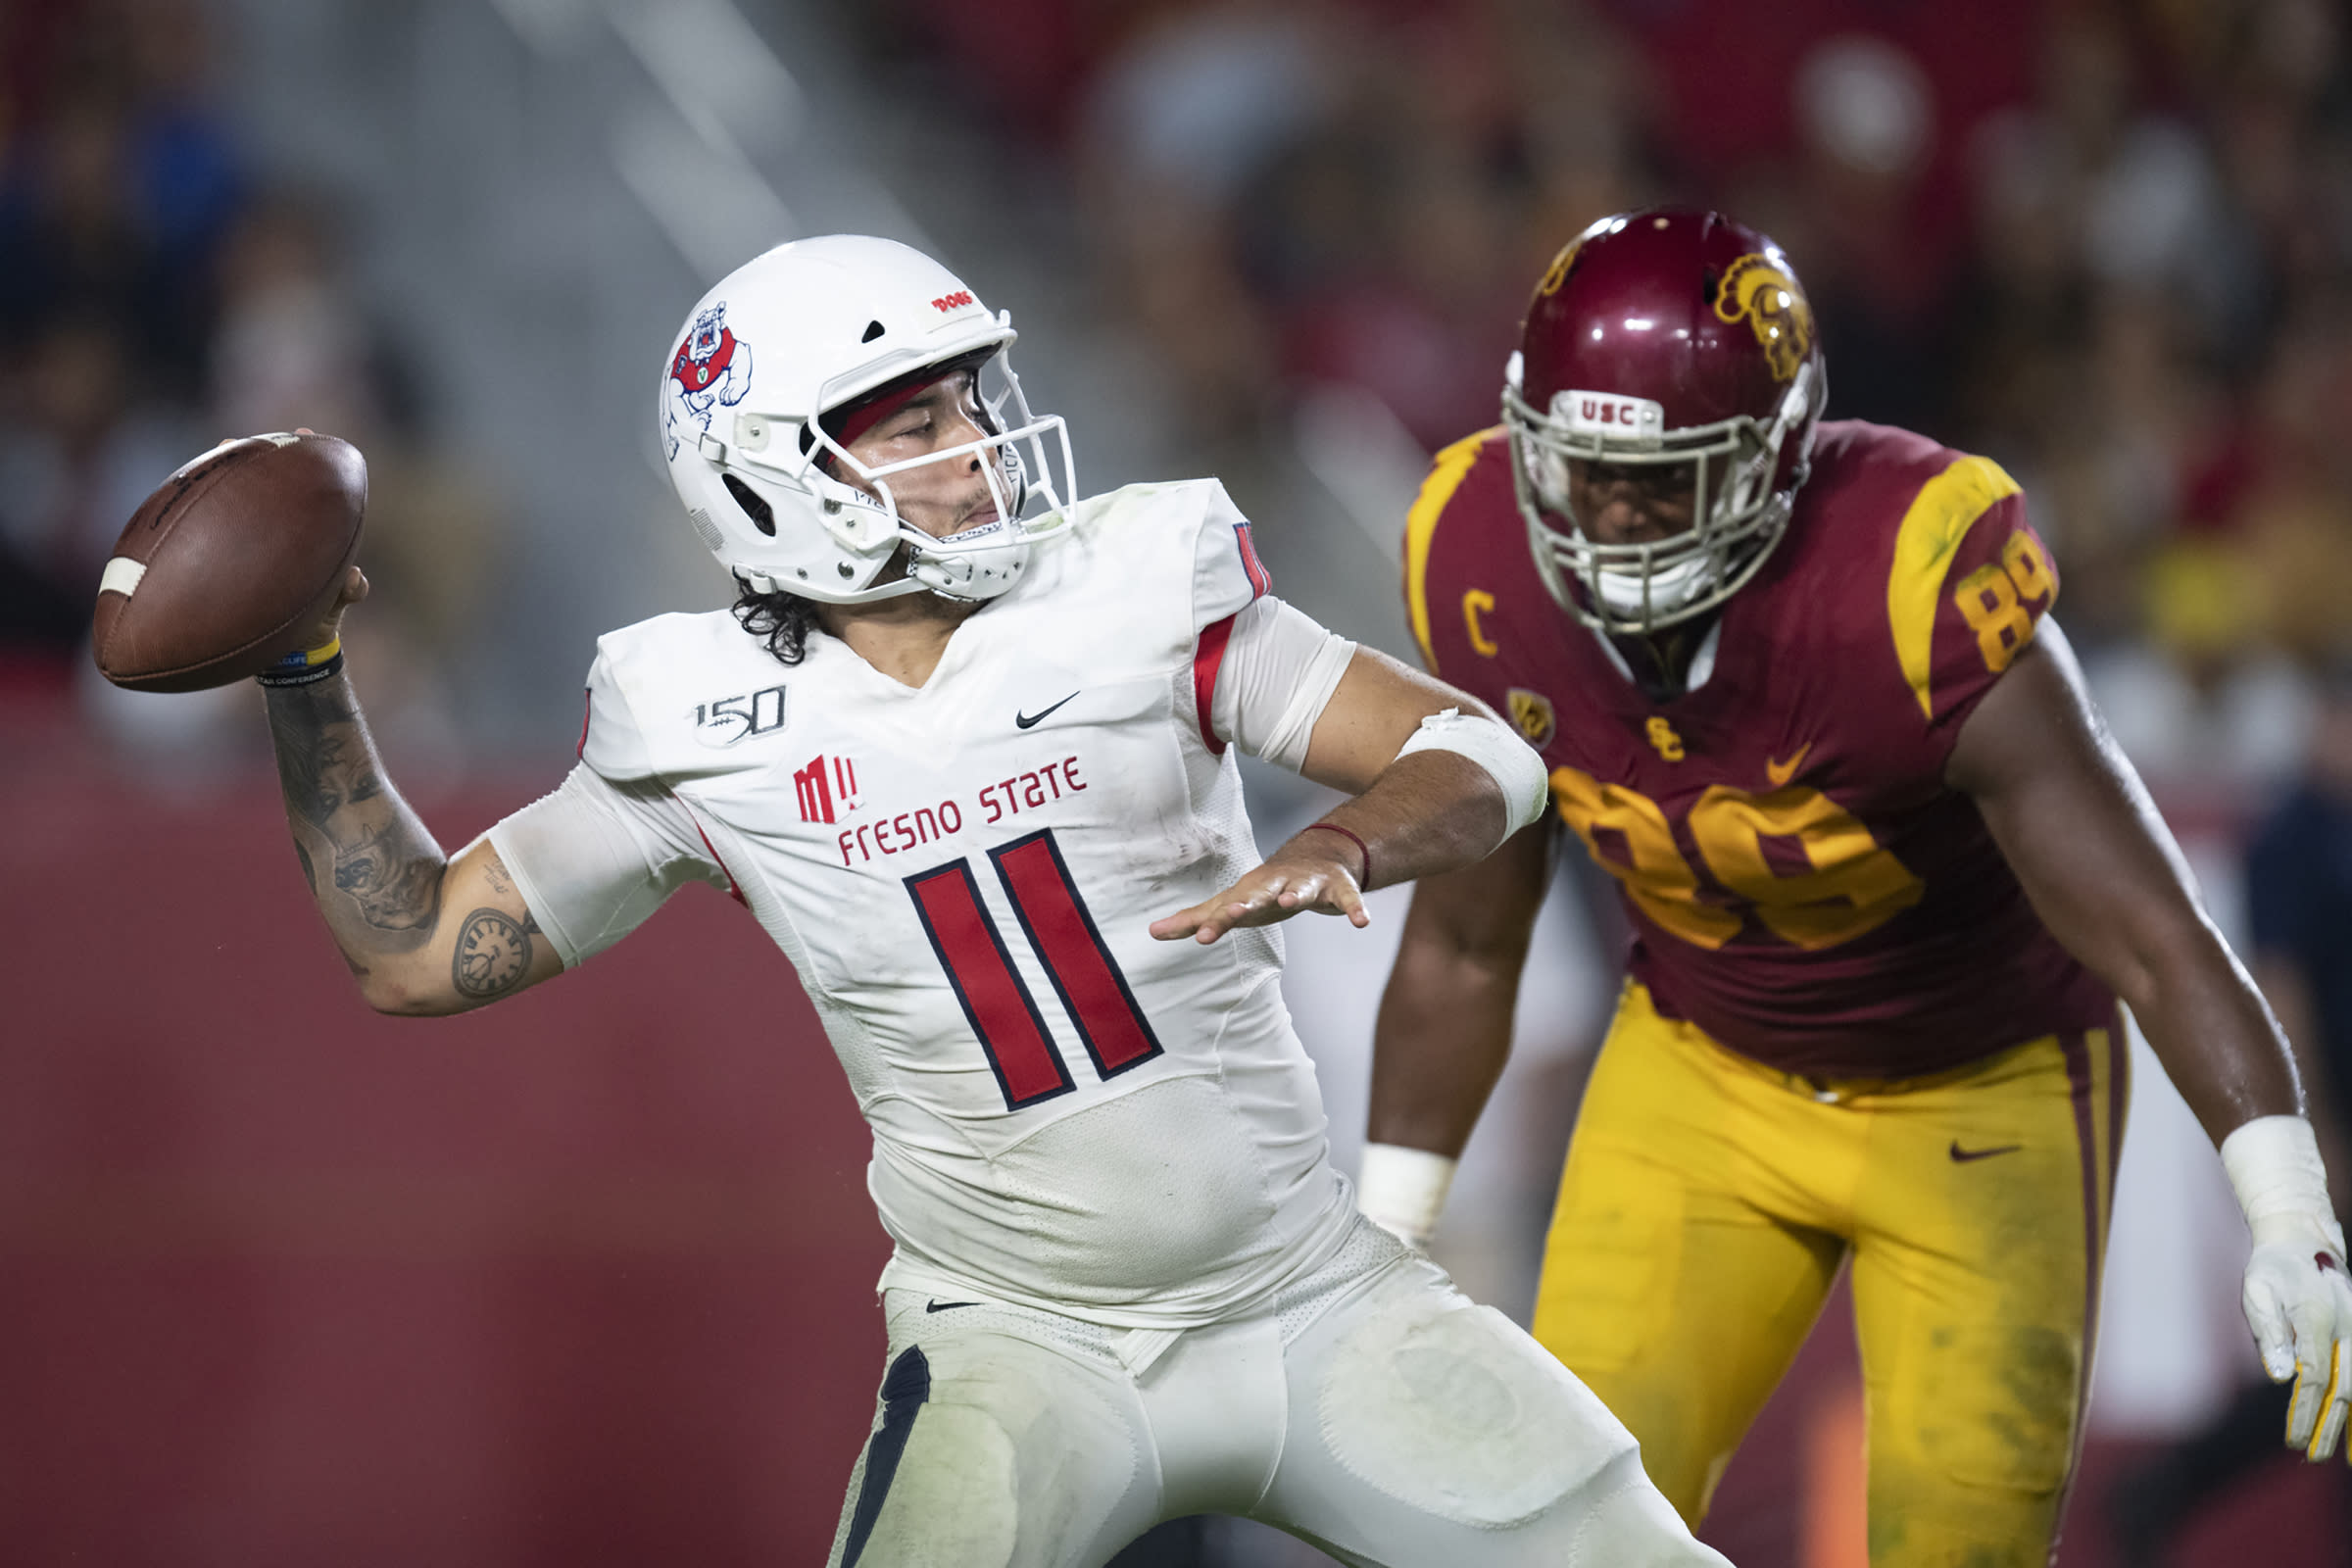 FILE - In this Sept. 31, 2019, file photo, Fresno State quarterback Jorge Reyna, left, looks to throw a pass as Southern California USC Trojans defensive lineman Christian Rector approaches during an NCAA college football game in Los Angeles. The NCAA's Board of Governors is urging Gov. Gavin Newsom not to sign a California bill that would allow college athletes to receive money for their names, likenesses or images. In a six-paragraph letter to Newsom, the board said the bill would give California schools an unfair recruiting advantage. As a result, the letter says, the NCAA would declare those schools ineligible for its events. (AP Photo/Kyusung Gong, File)